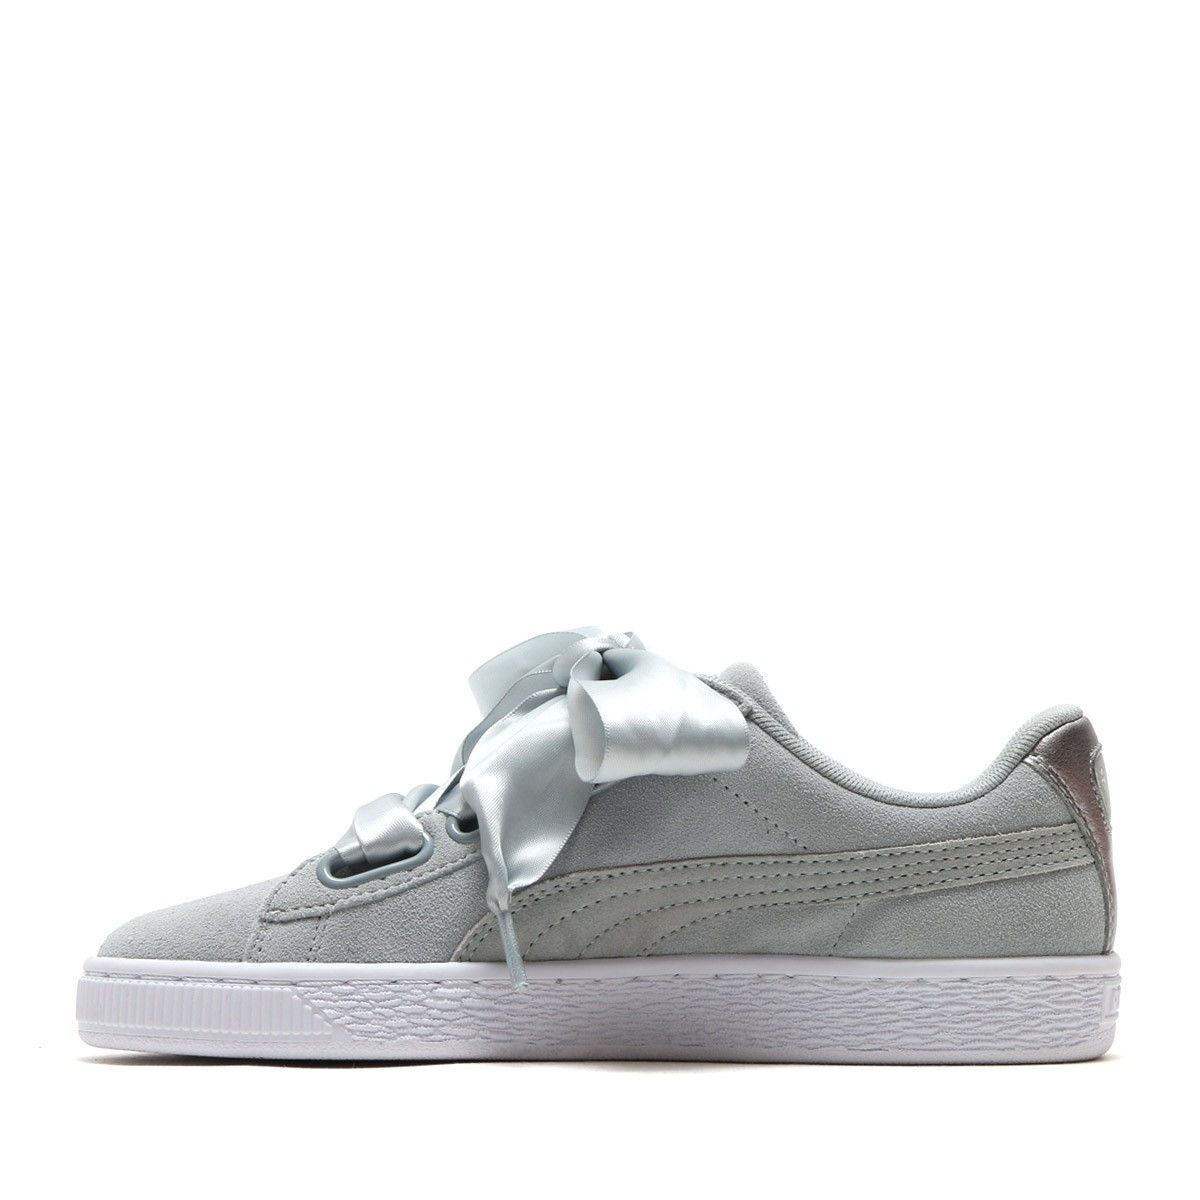 on sale addaa 8c8bf Basket Puma Suede Heart Metallic Safari - 364083-02 - Pegashoes